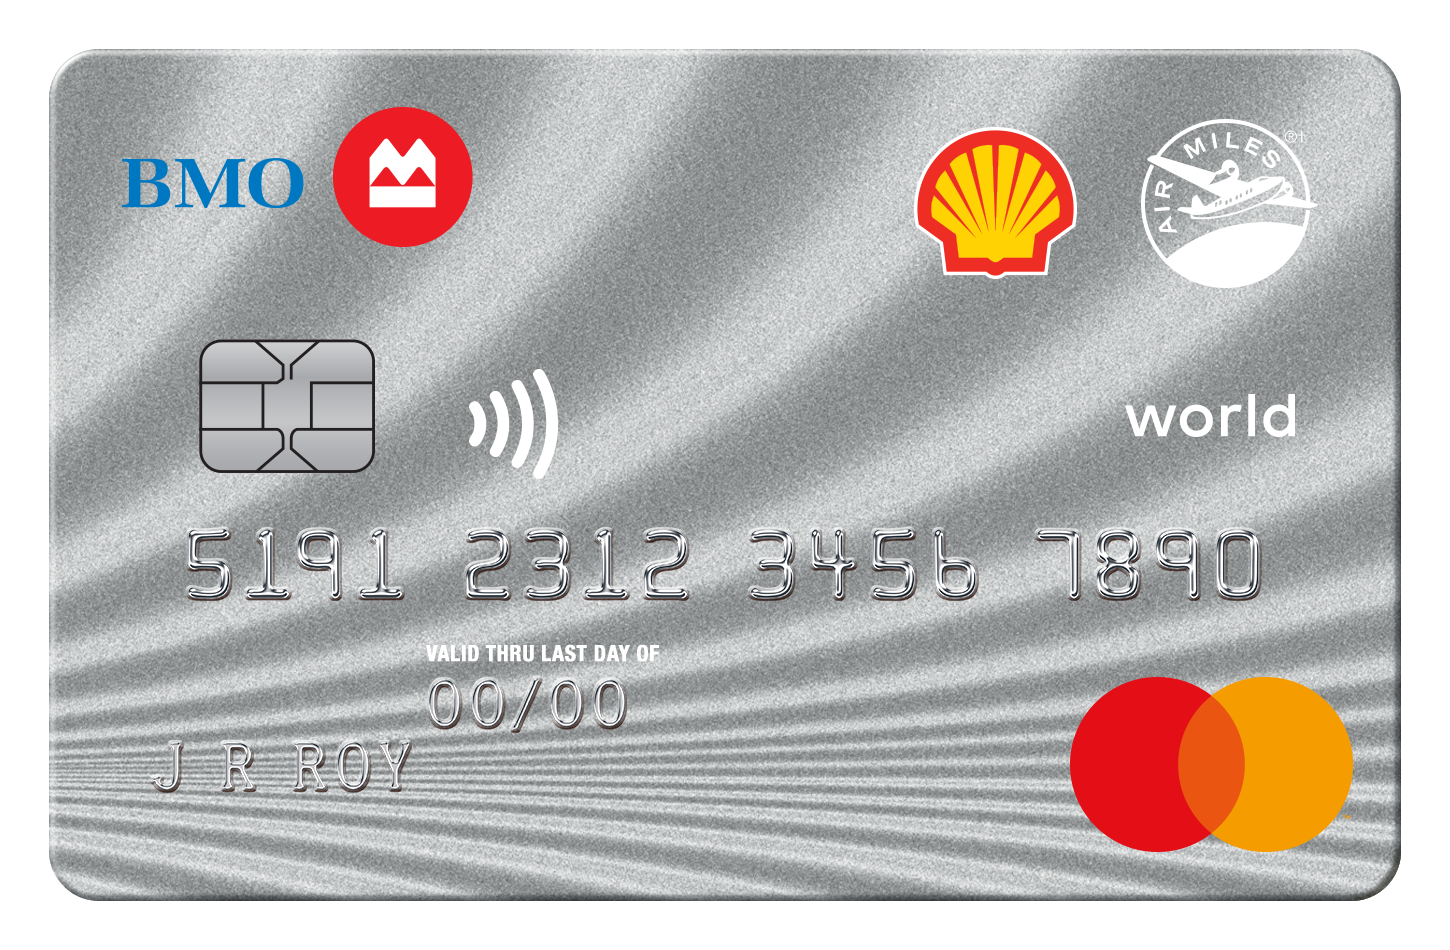 Rewards canada bmo credit card bonus mile point offers shell air miles world mastercard from bmo reheart Gallery